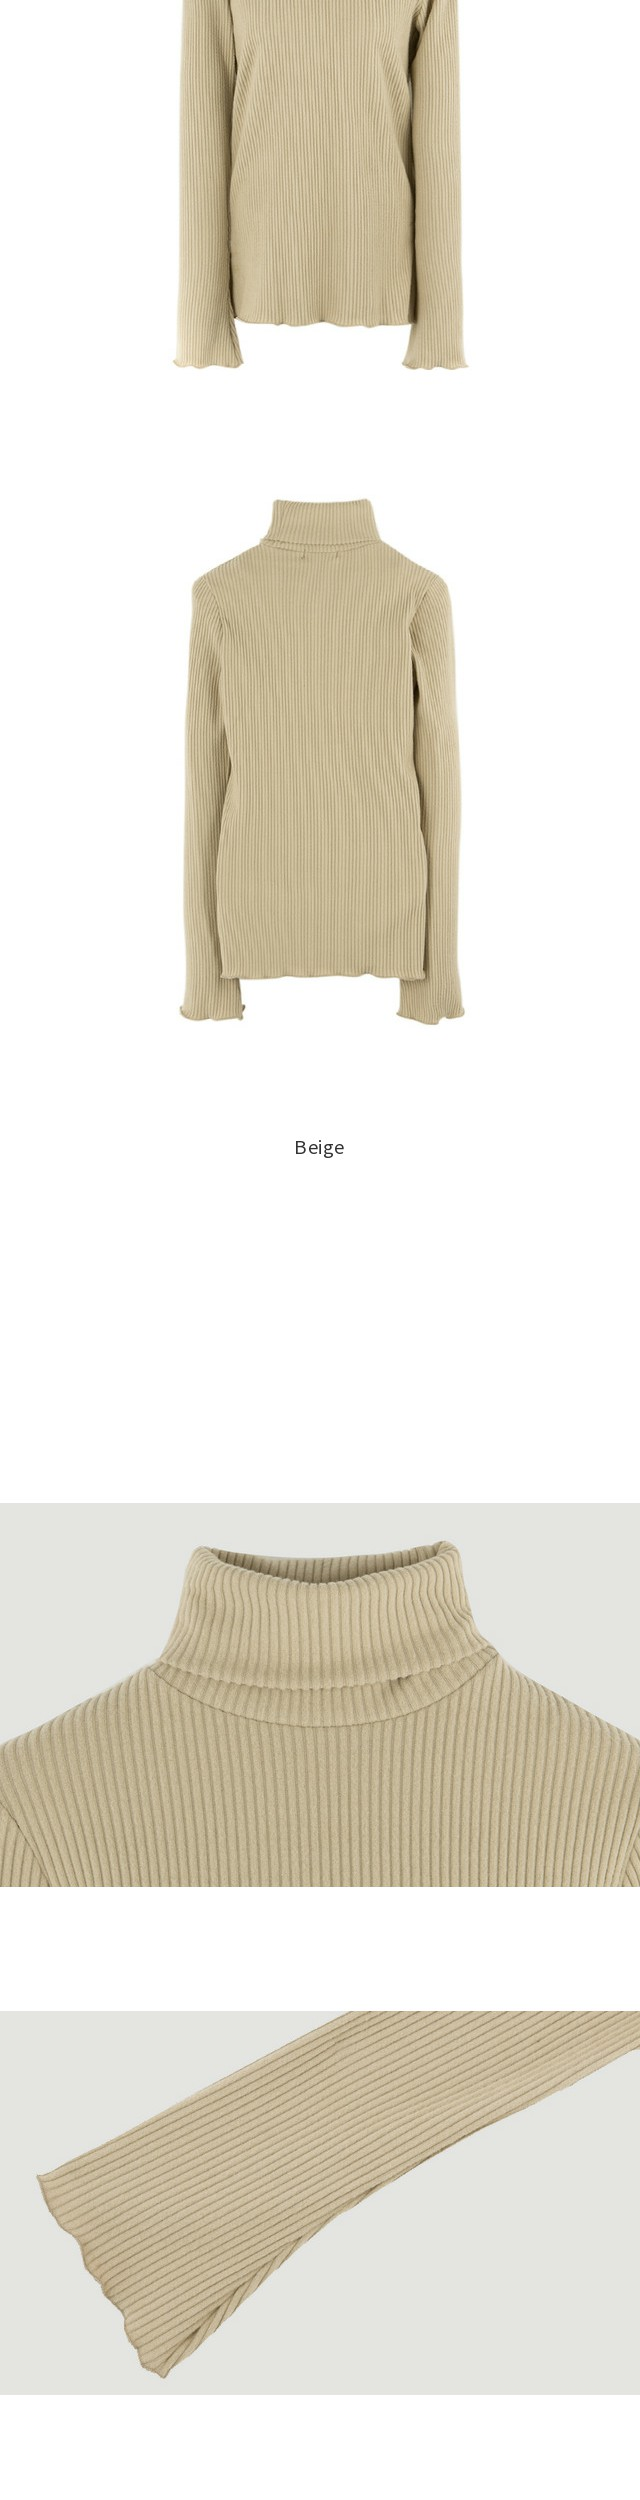 Cut brushed knit high neck